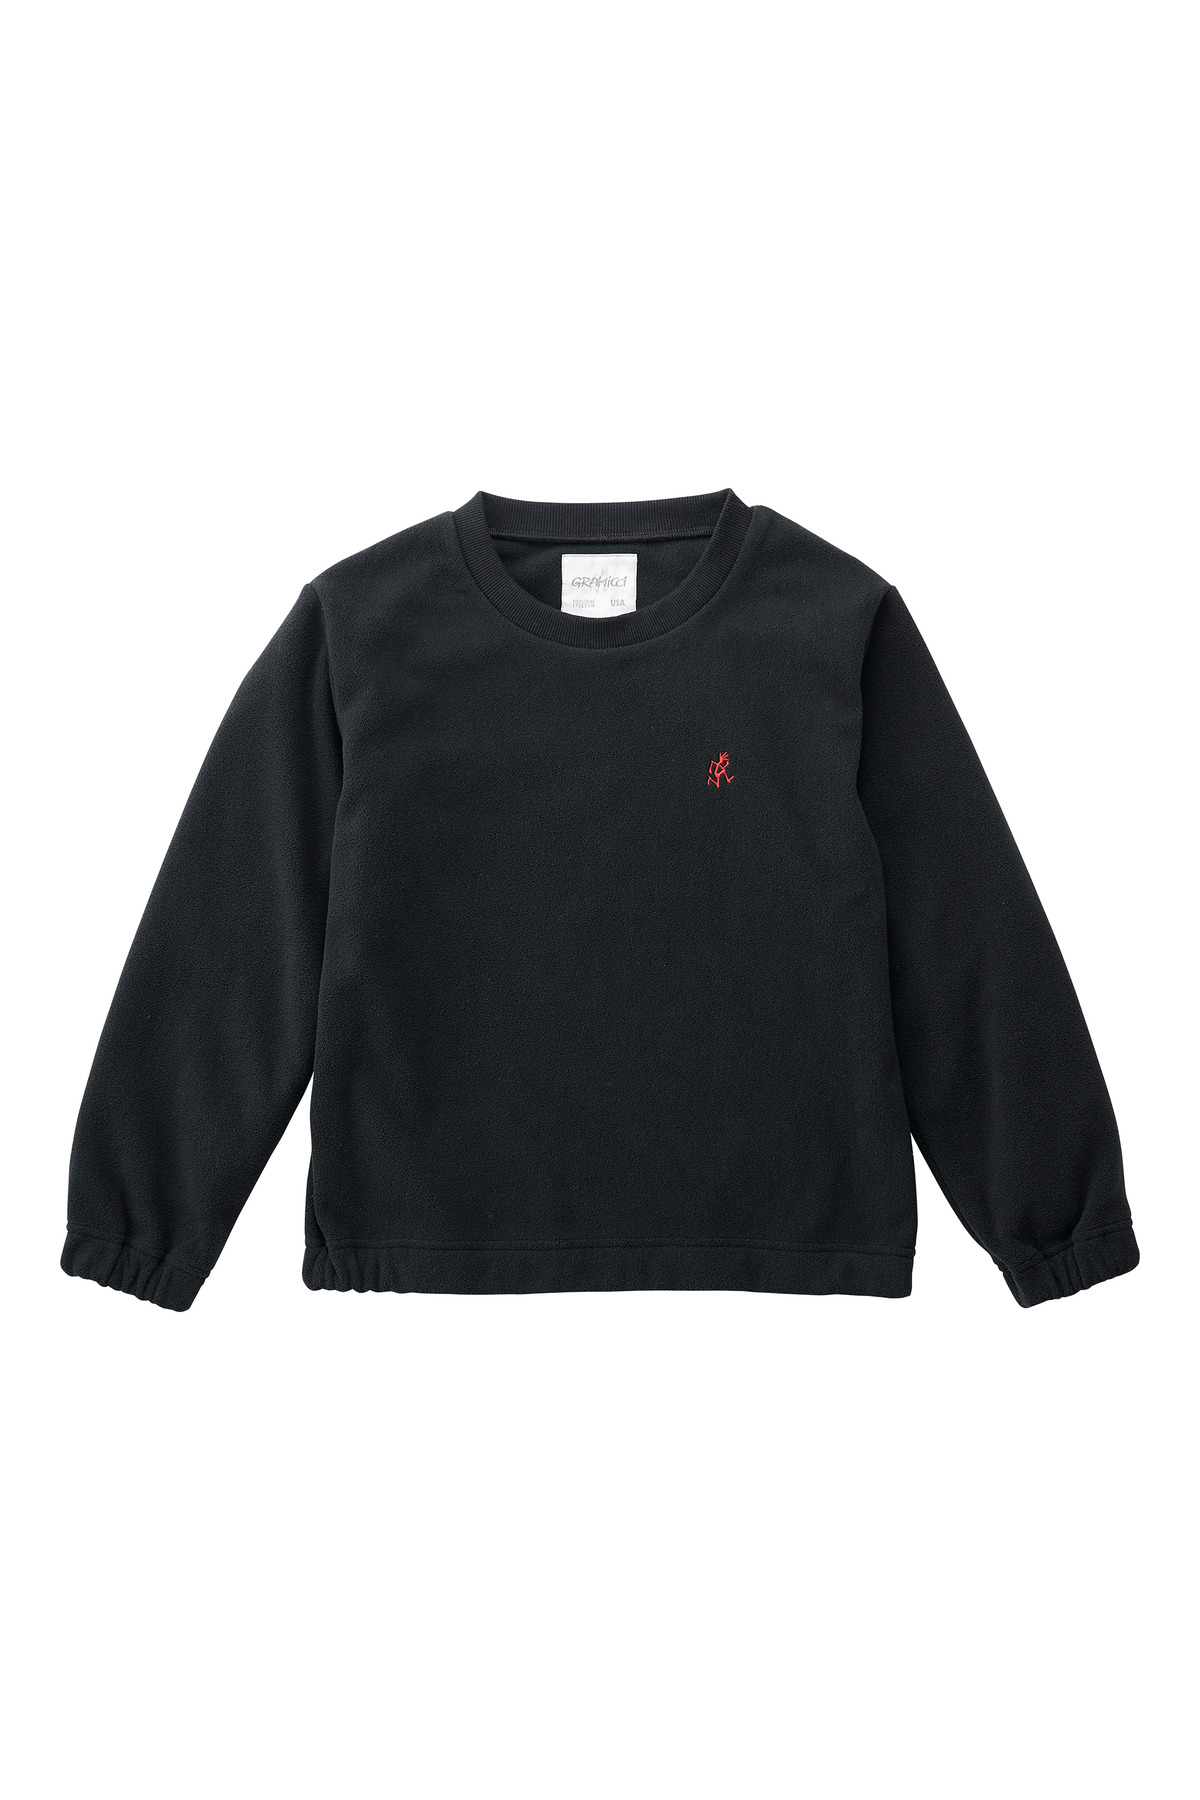 KIDS FLEECE CREW NECK BLACK